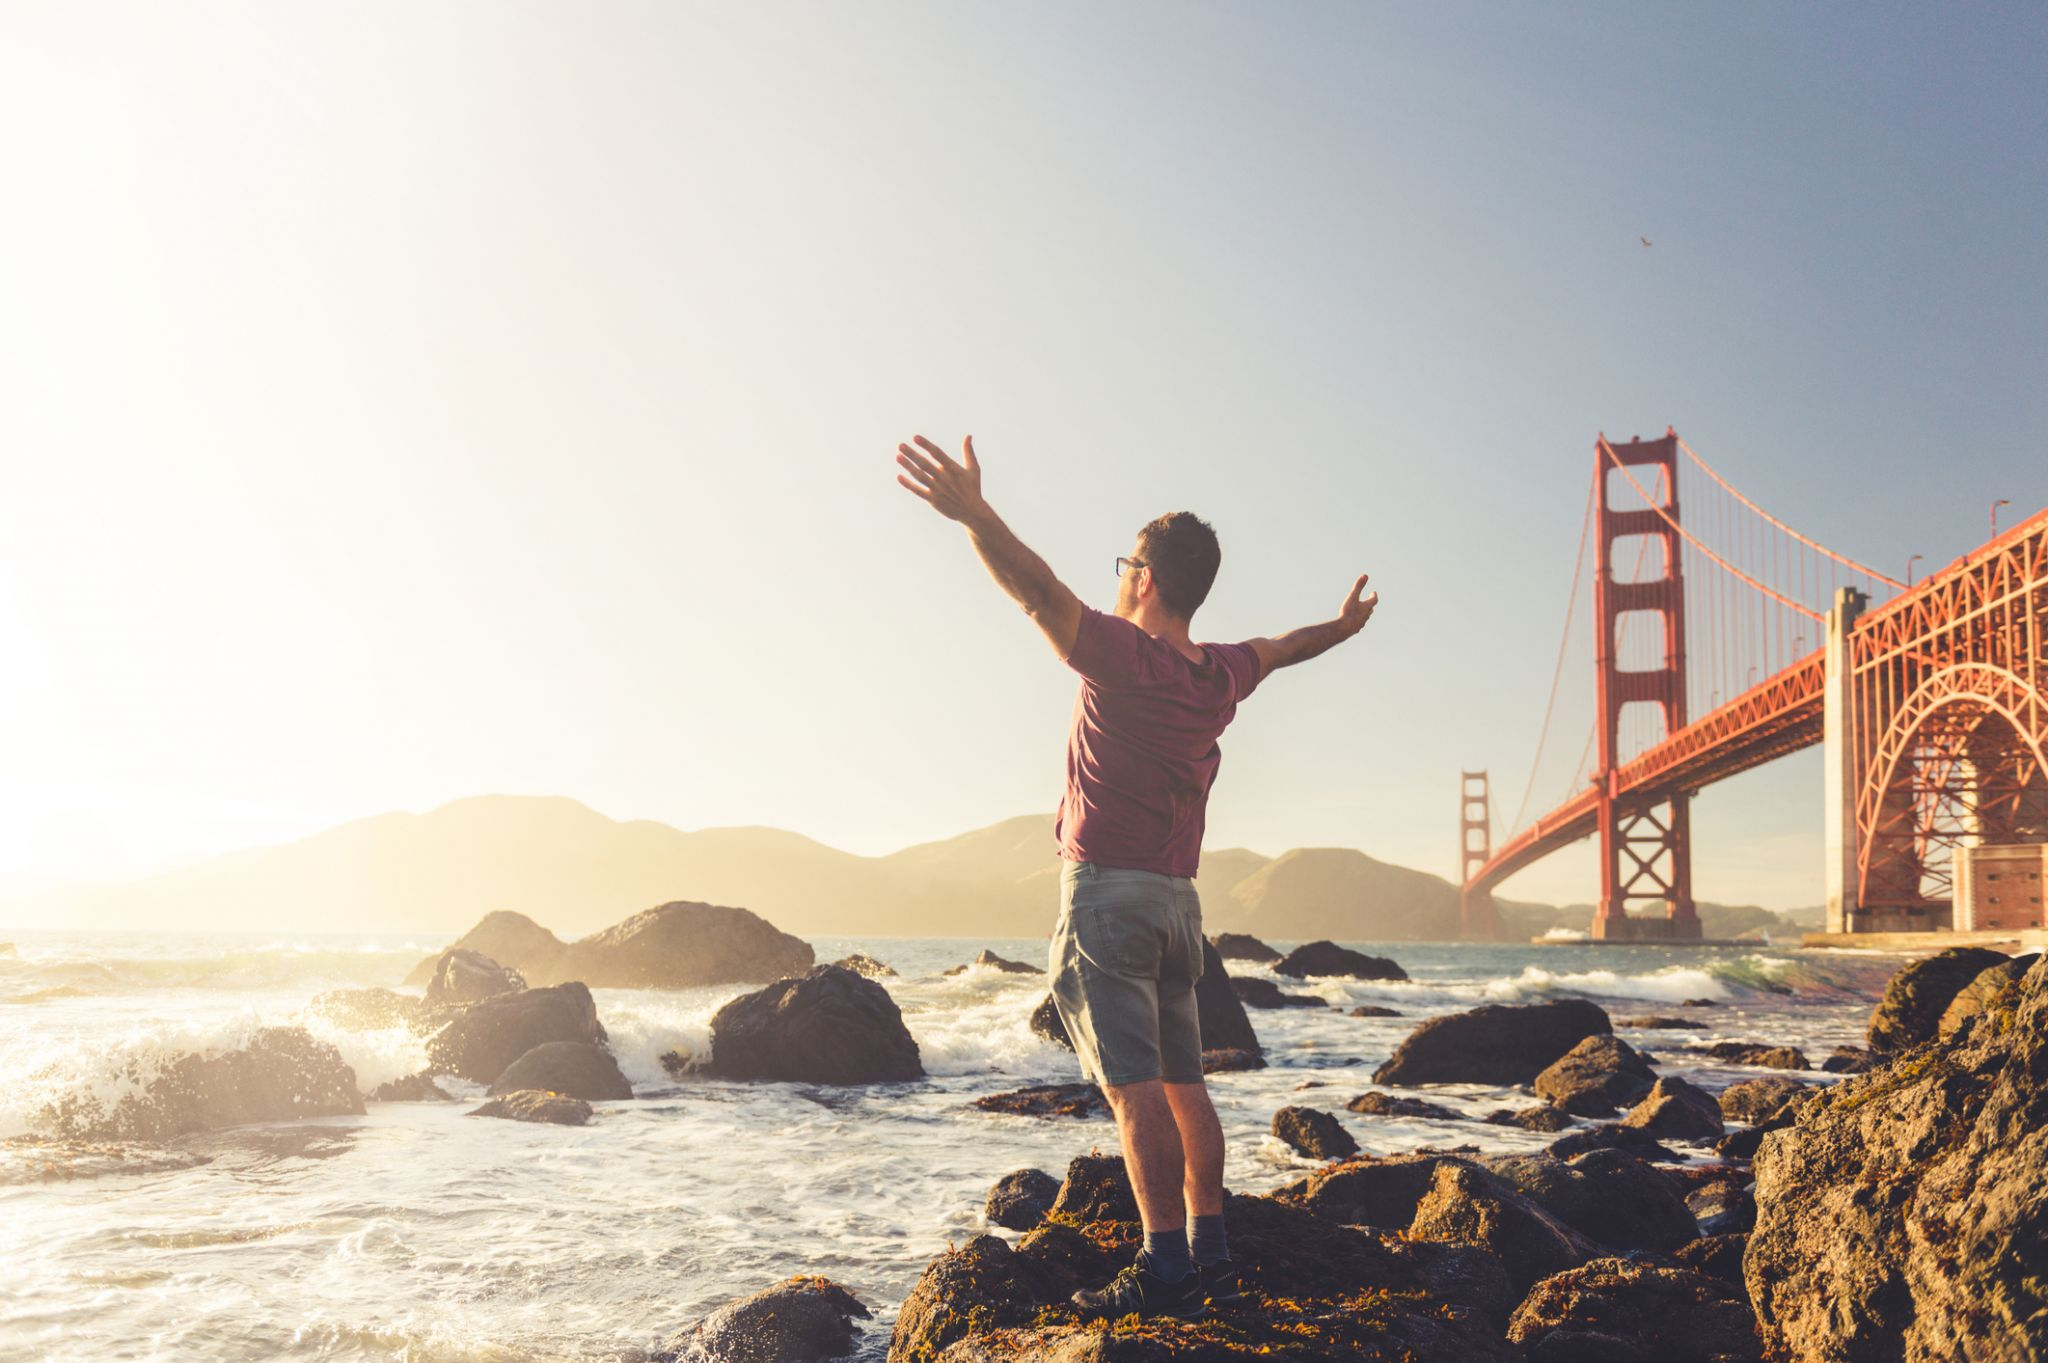 Itinerary: One day in SF. What do you do to show visitors the real city?